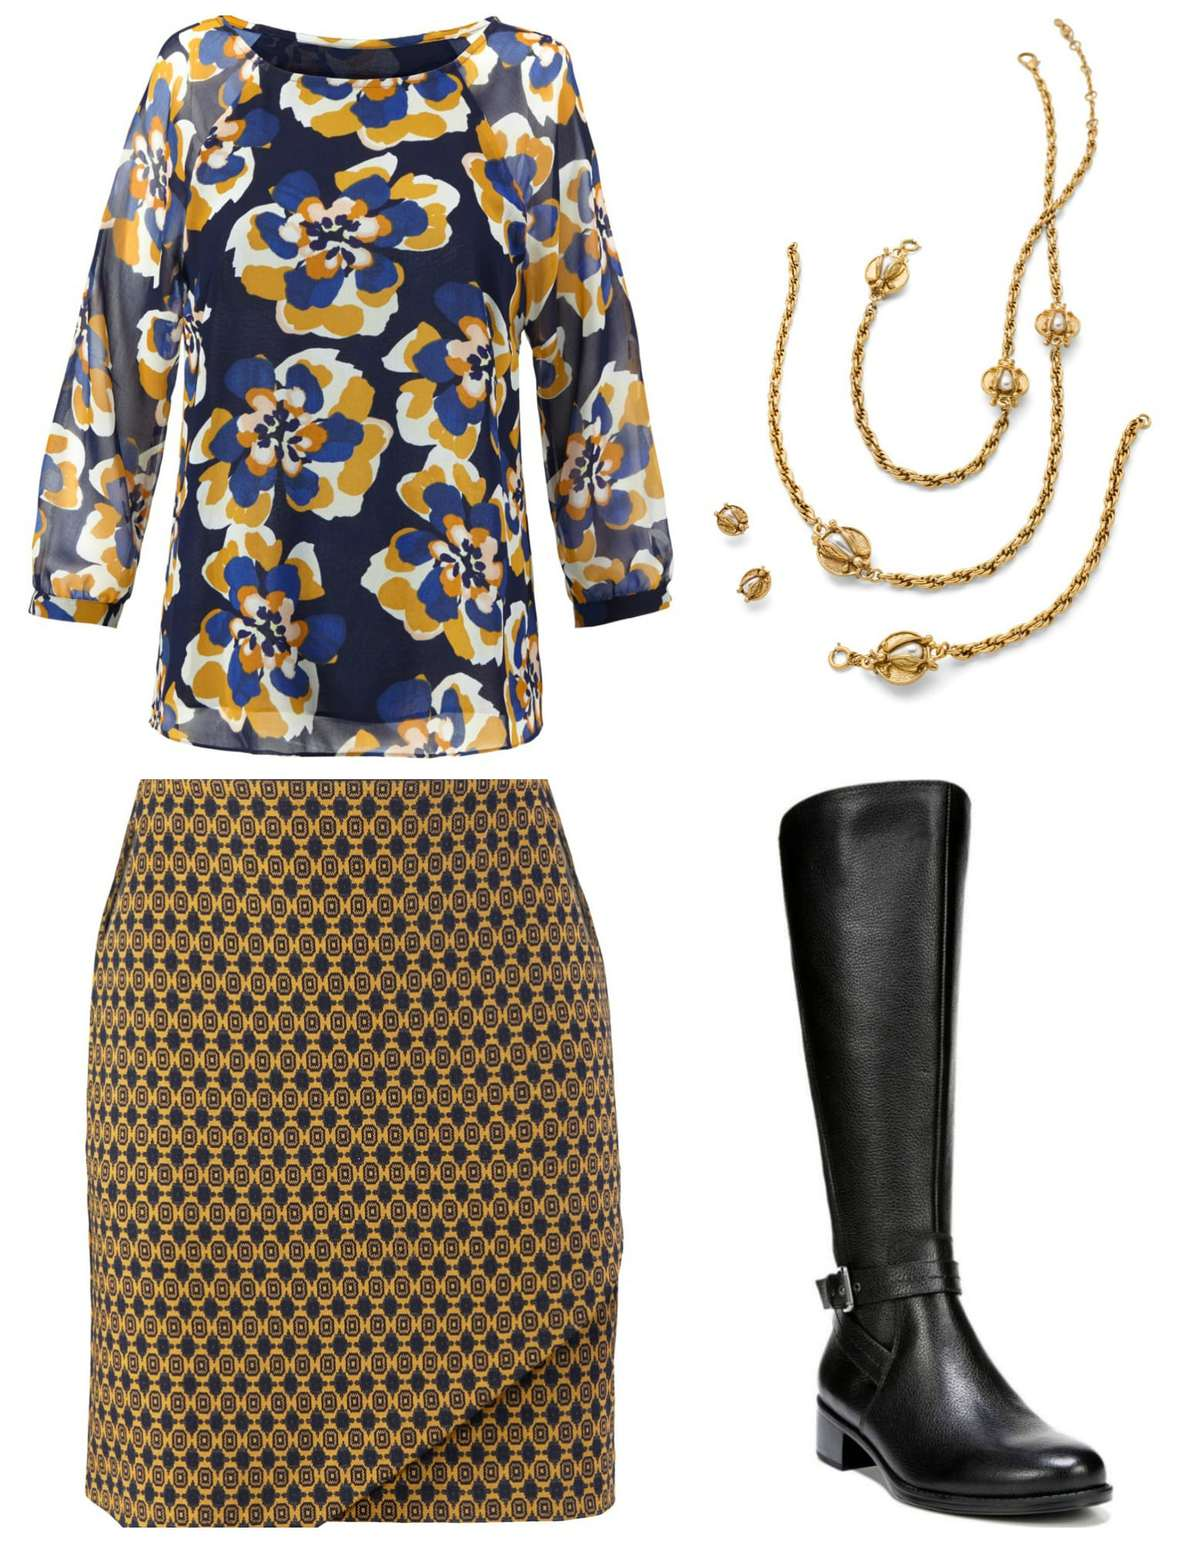 The cabi Lydia Blouse and Standout Skirt styled for fall with the cabi Buzz Necklace and Naturalizer Winnie riding boots.  Add black tights for a long legged look and warmth as the temps drop.